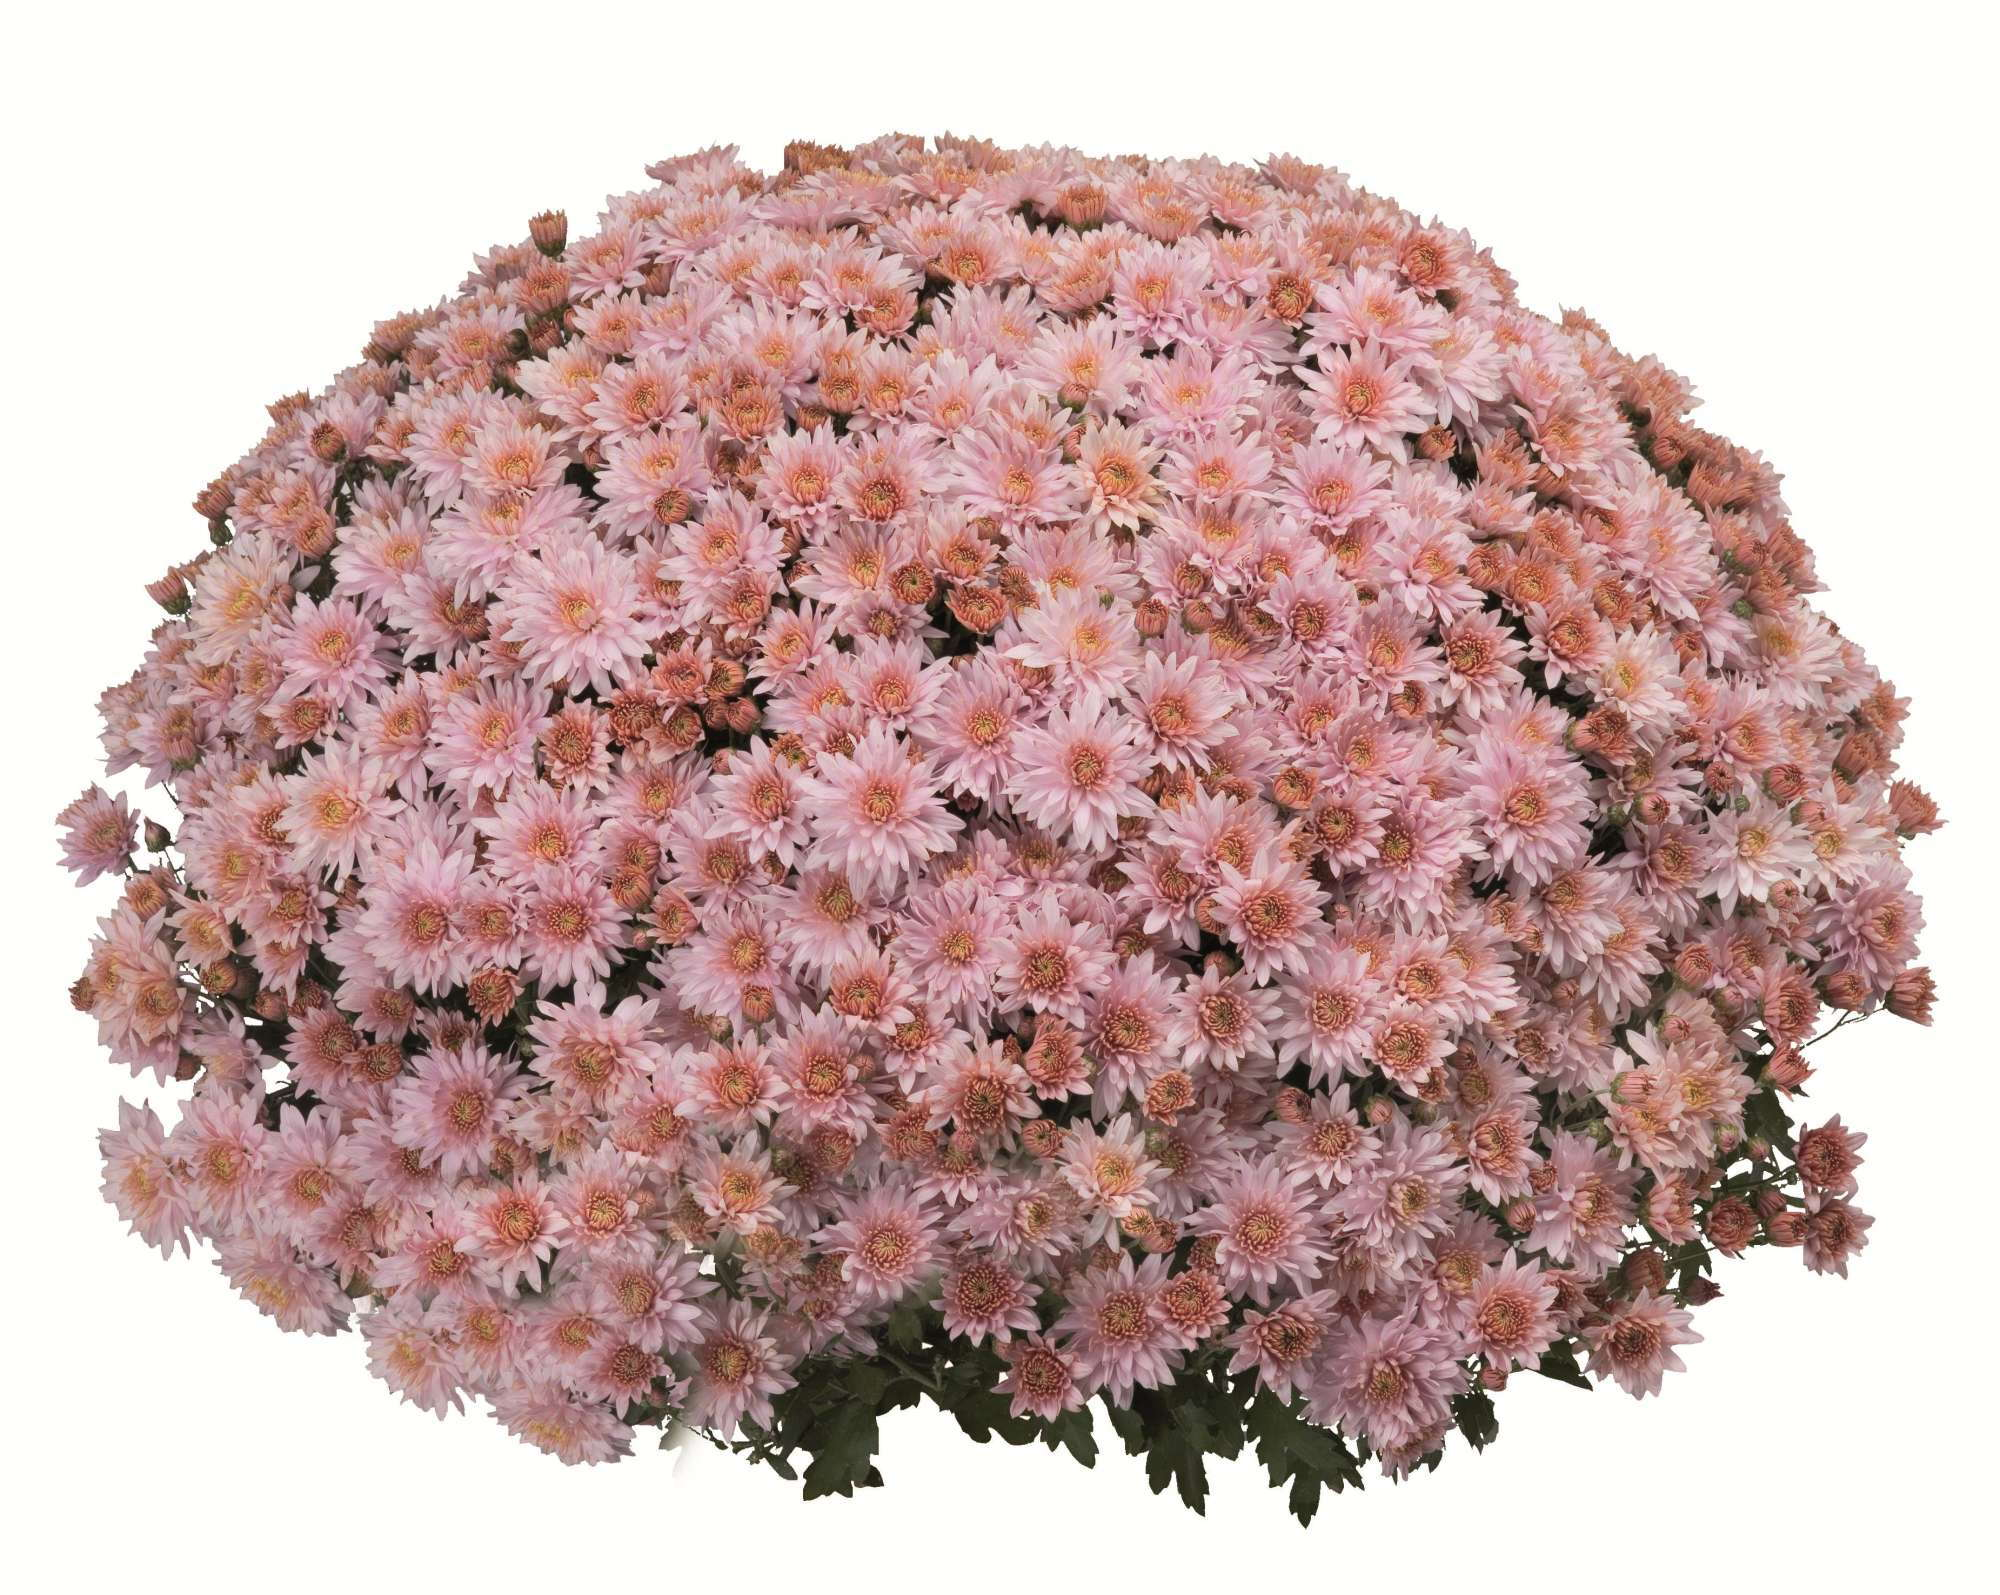 Chrysanthemum Mystic Mum Series: Medal Of Excellence Nominee